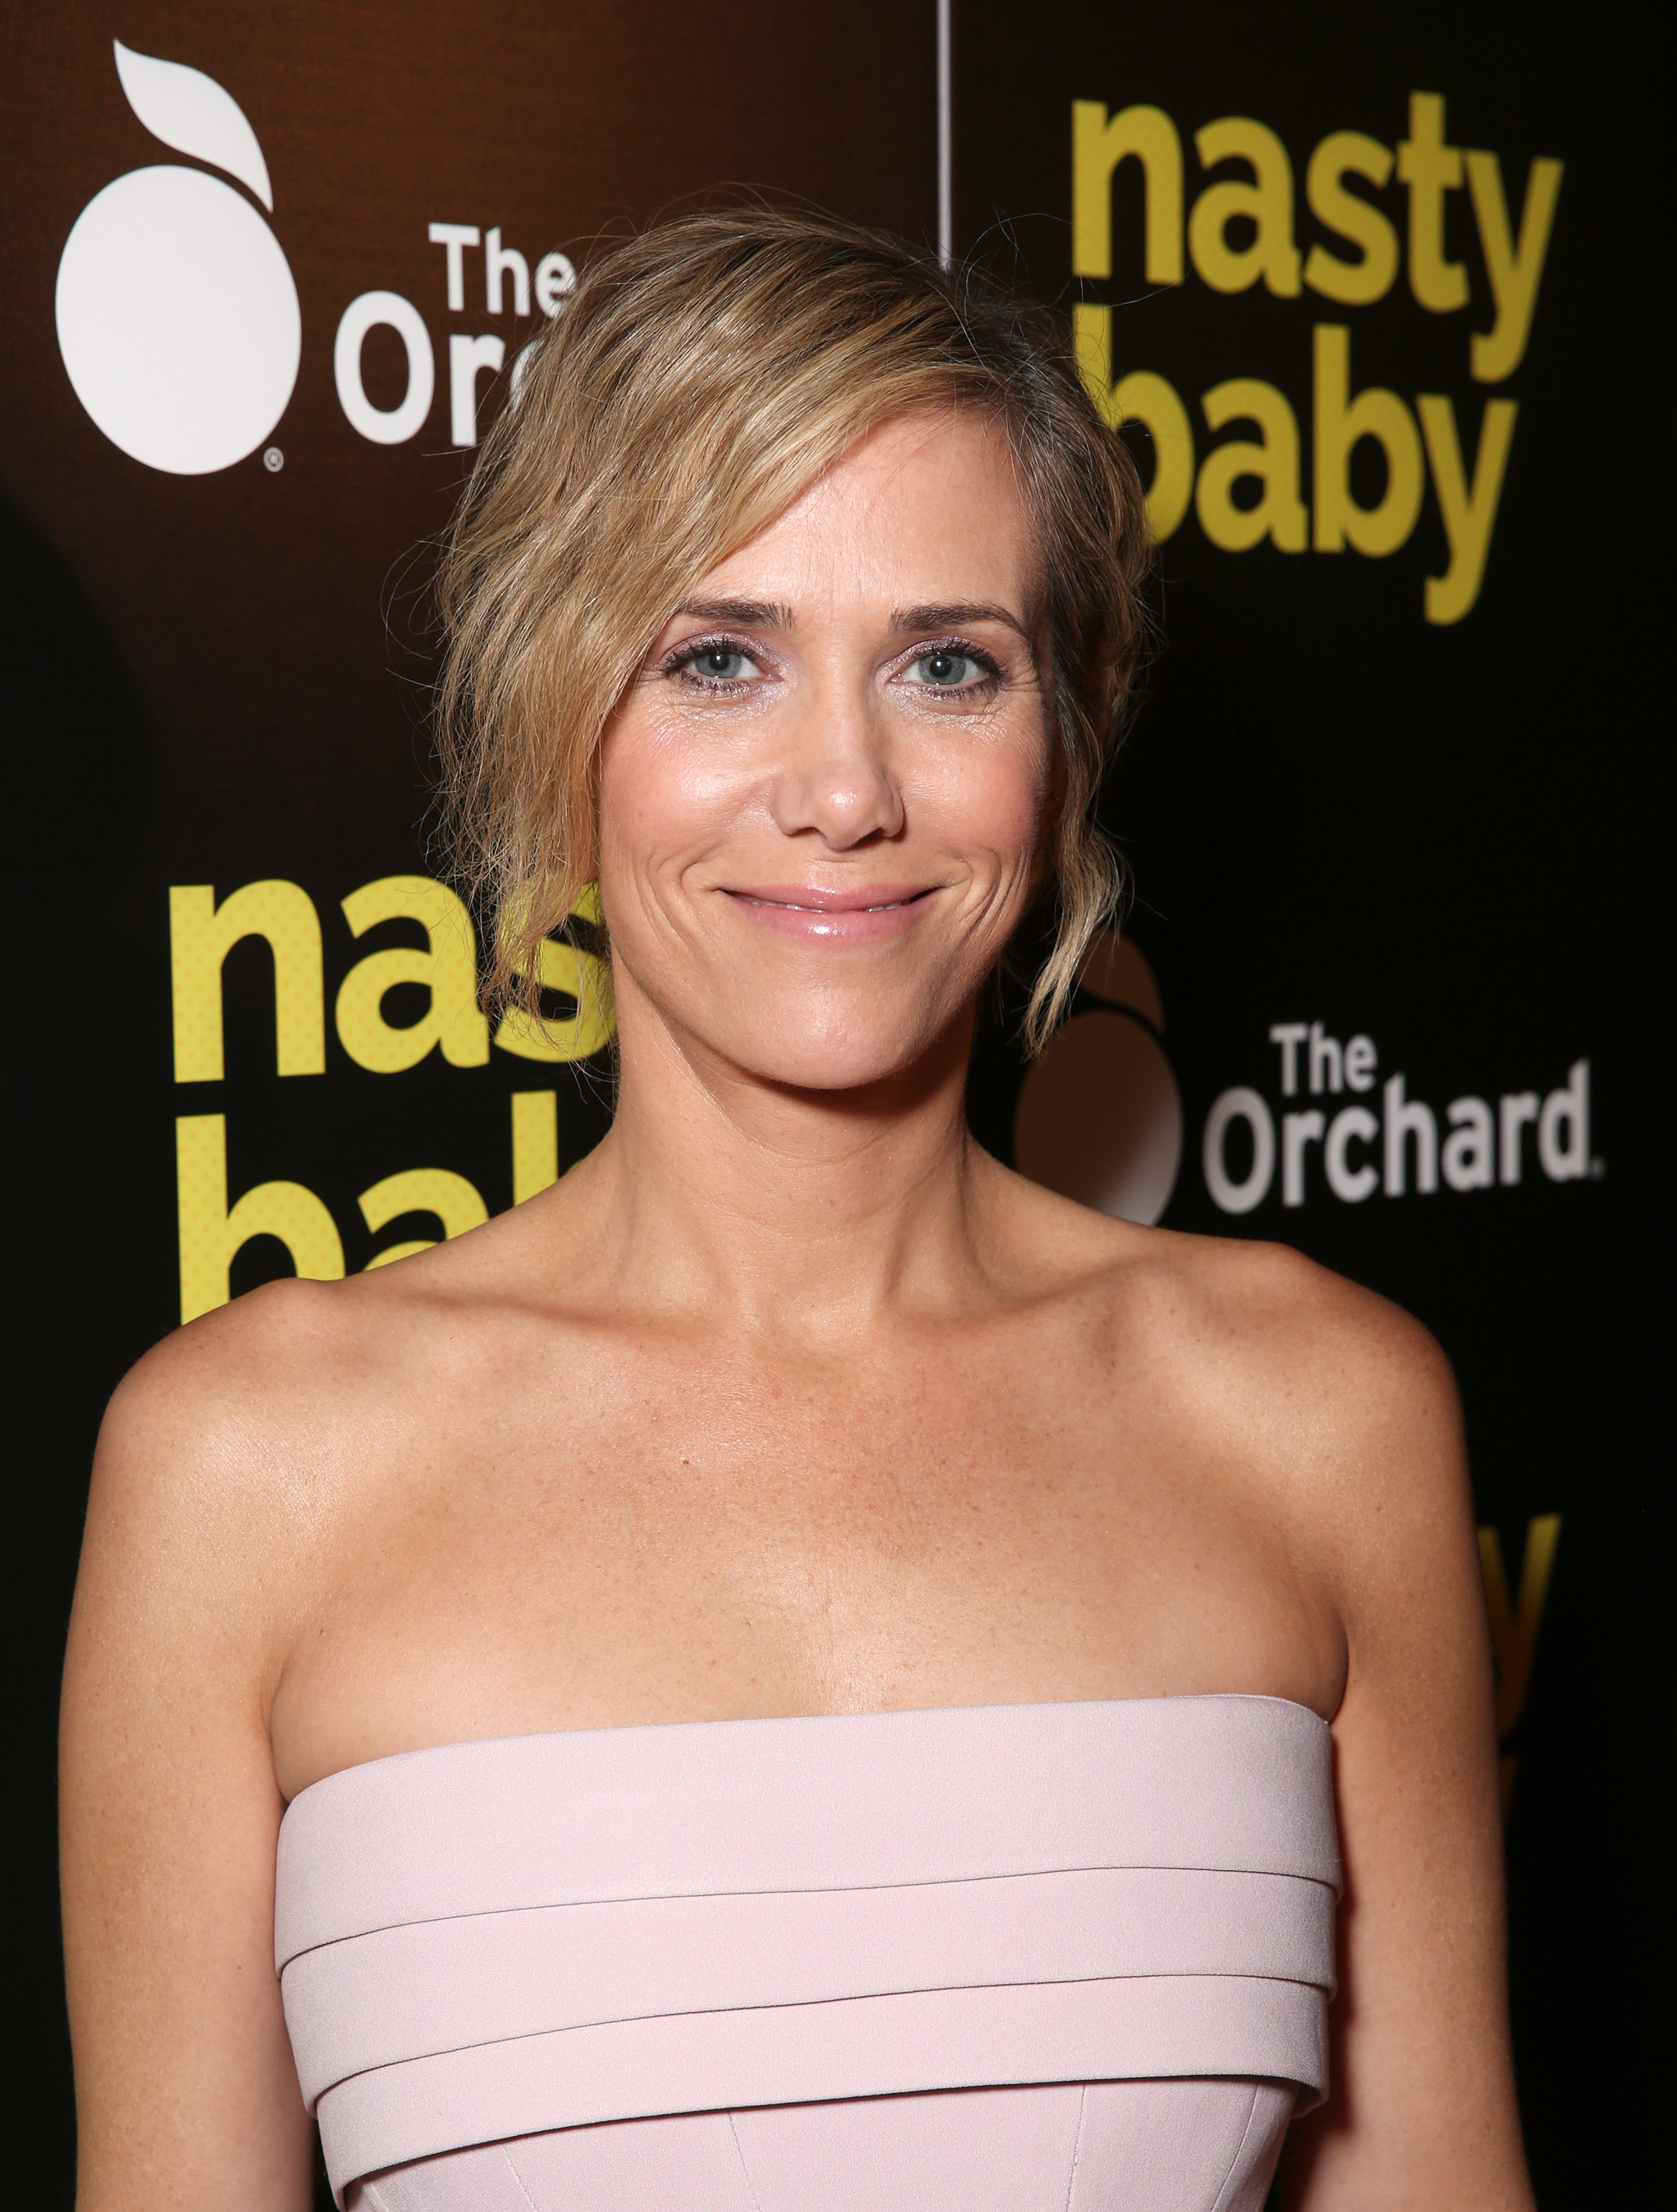 How tall is Kristen Wiig?